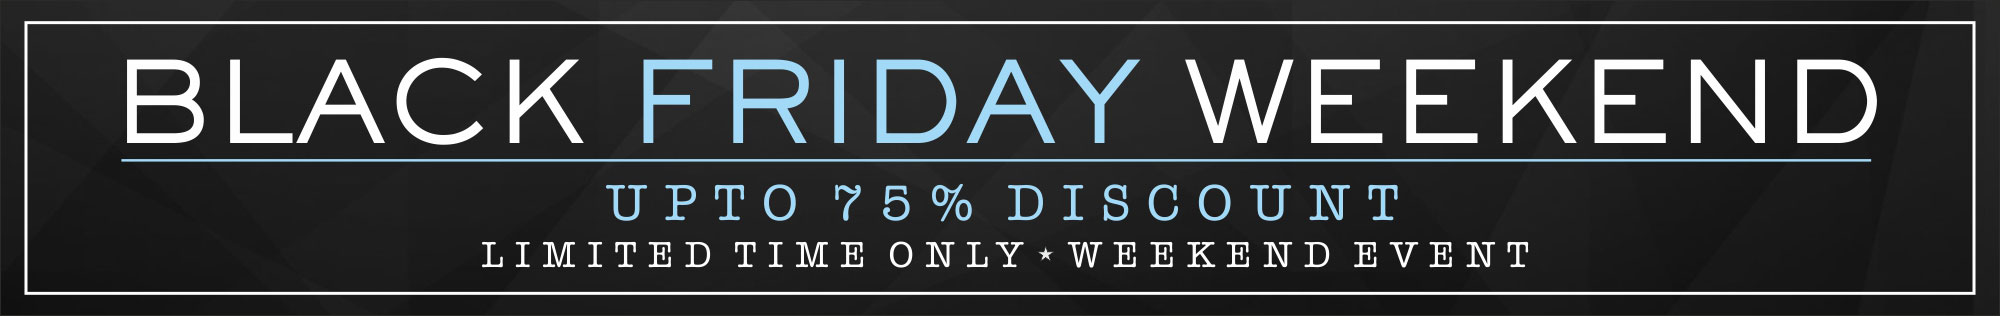 Black Friday Weekend! - Up to 75% discount - Shop now